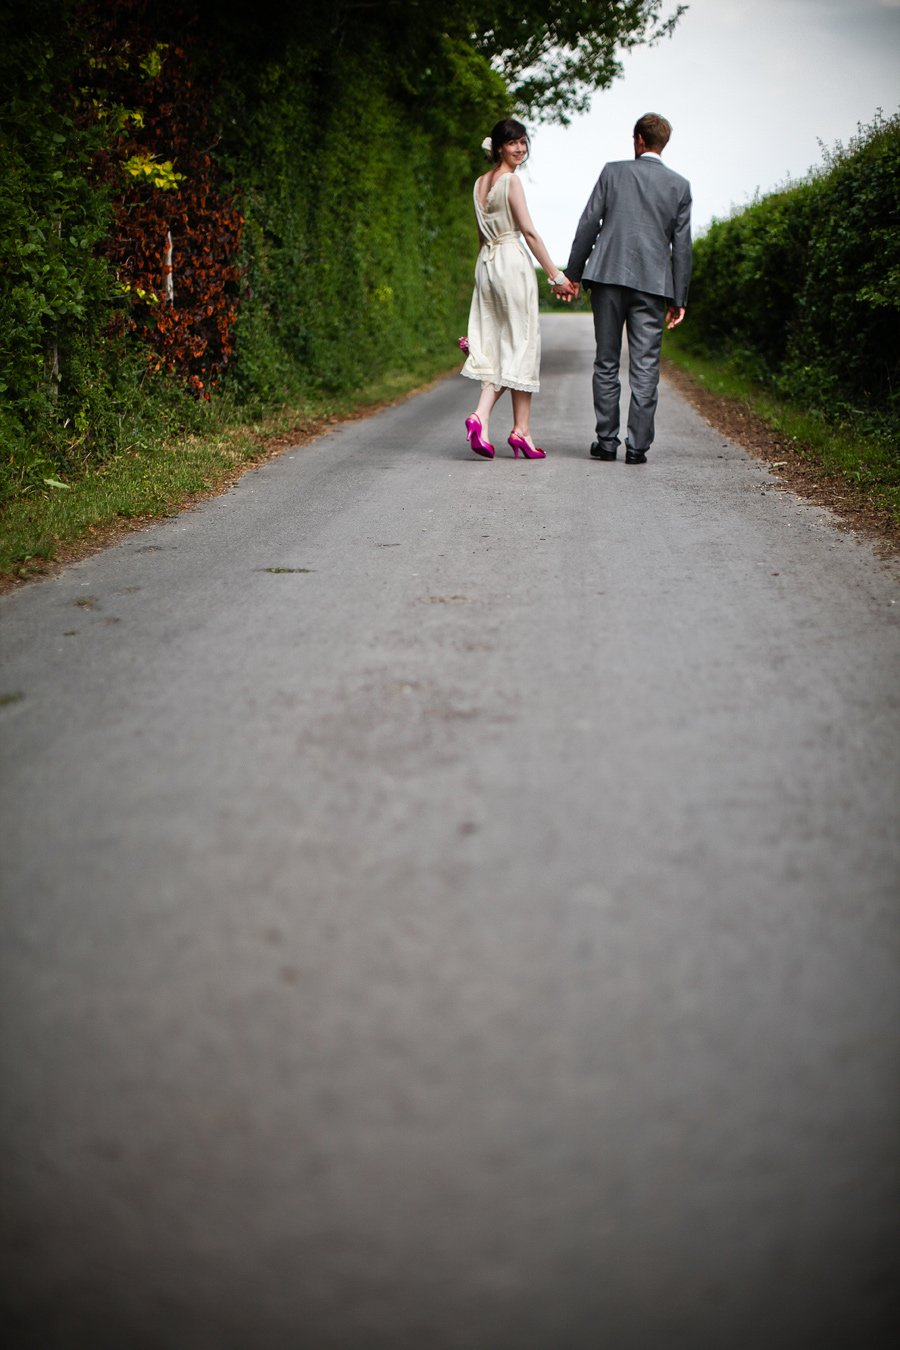 Berkshire-Wedding-Photography-Fazackarley-Aisling-and-Philip-27